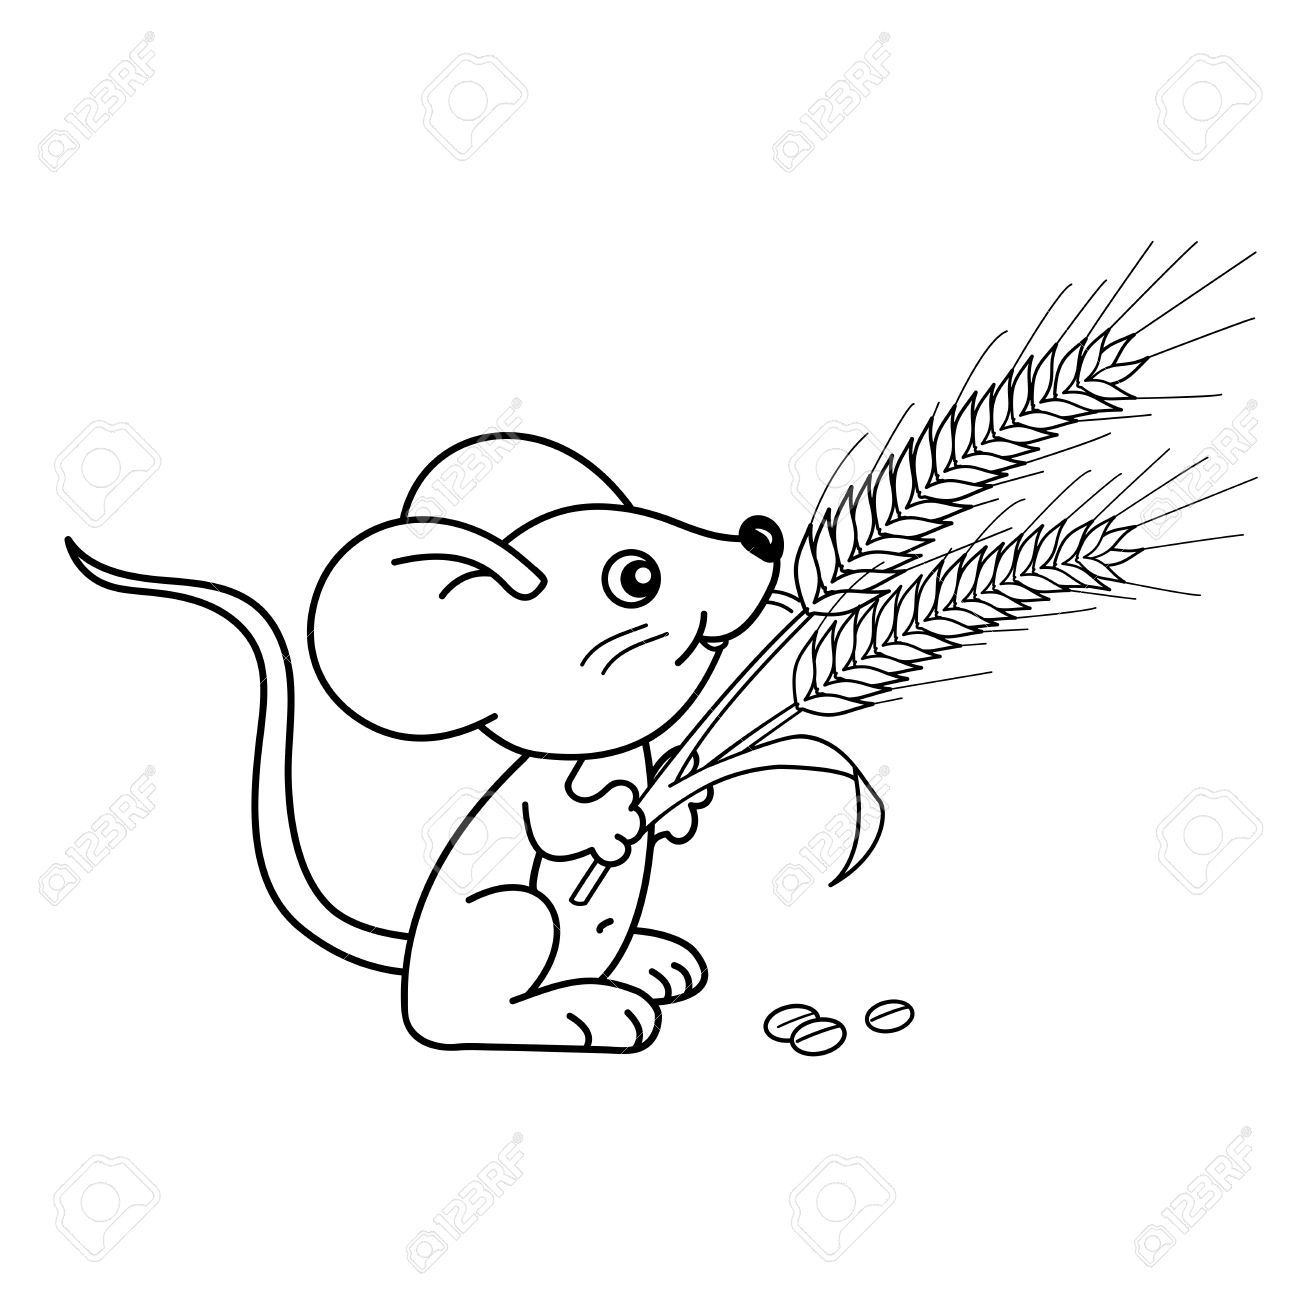 1300x1300 Coloring Page Outline Of Cartoon Little Mouse With Spikelets